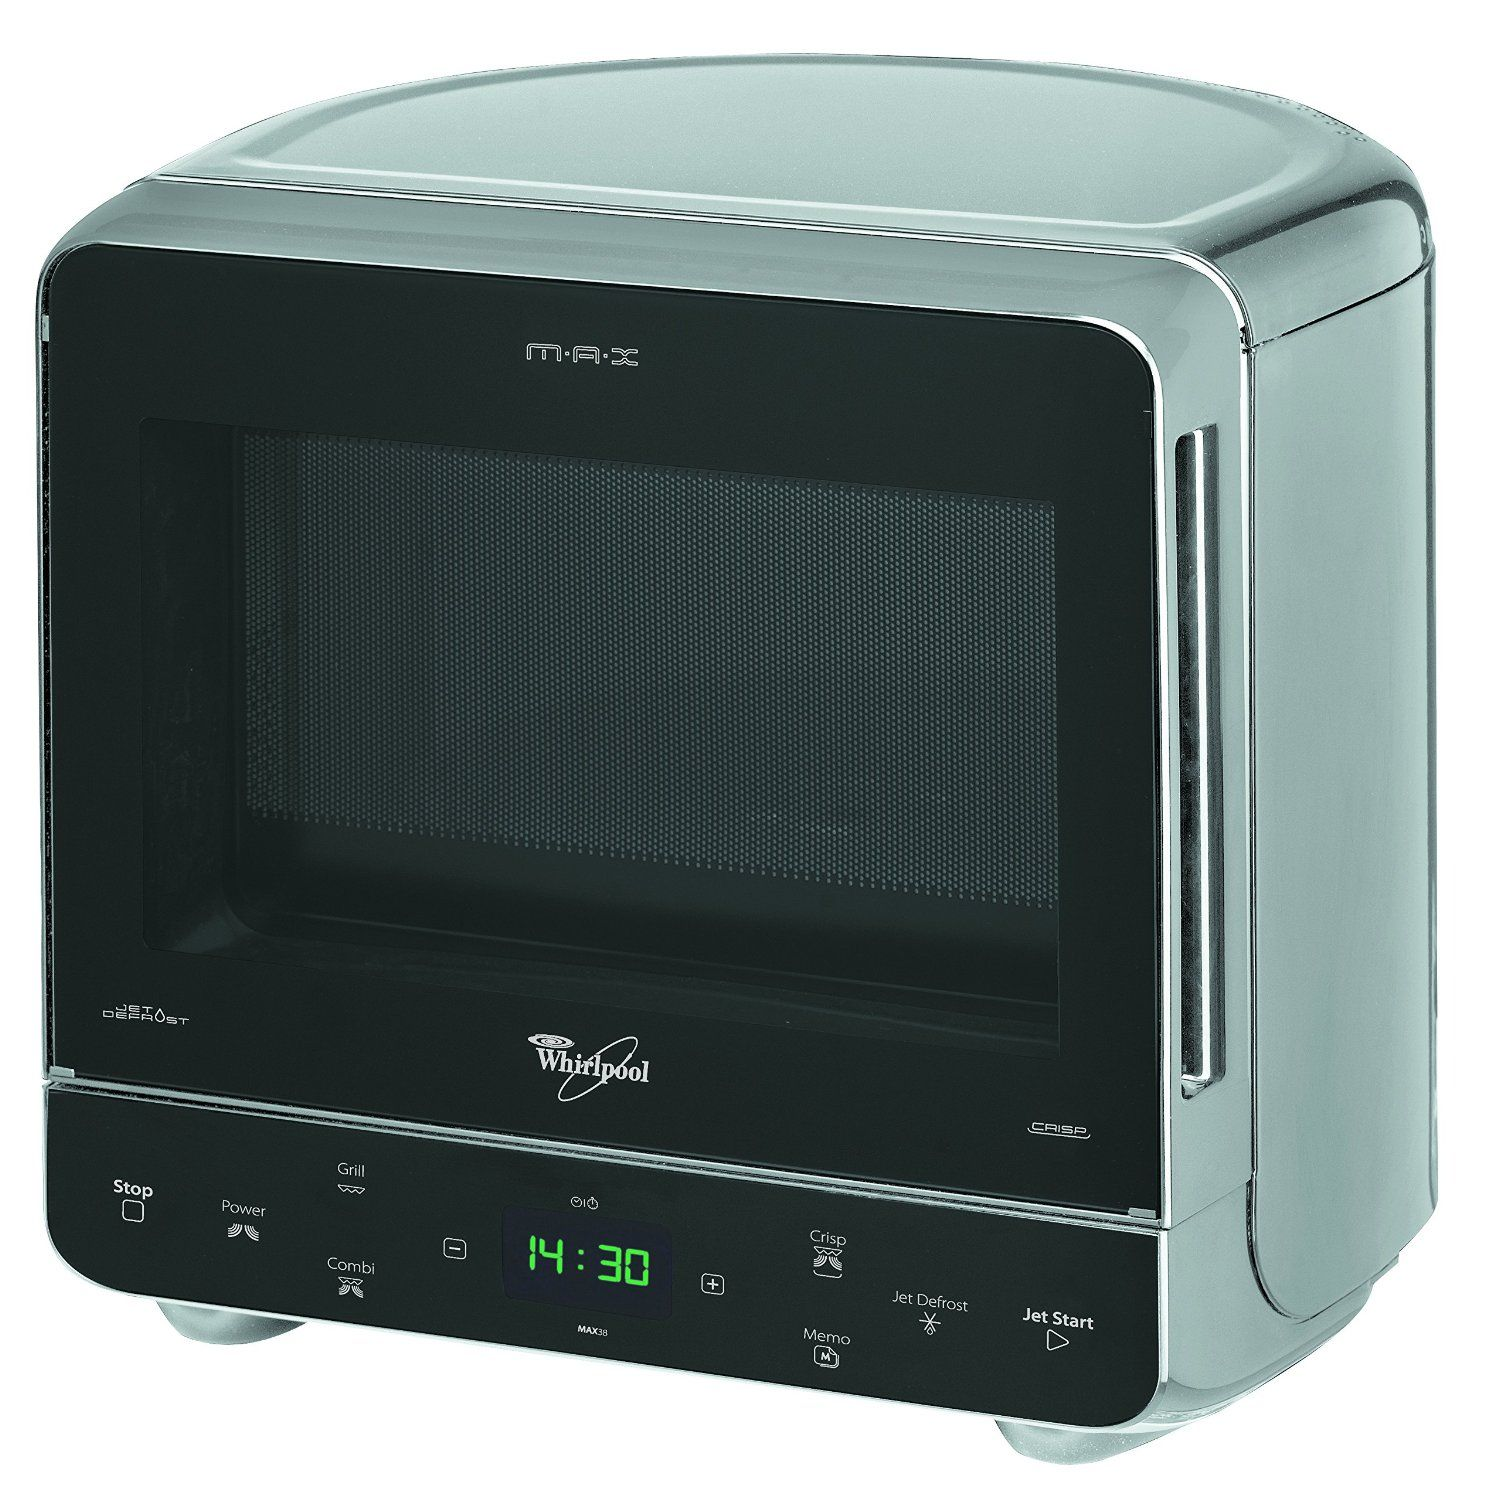 Whirlpool Max 38 Sl Corner Microwave Oven With Grill In Silver Curved Back